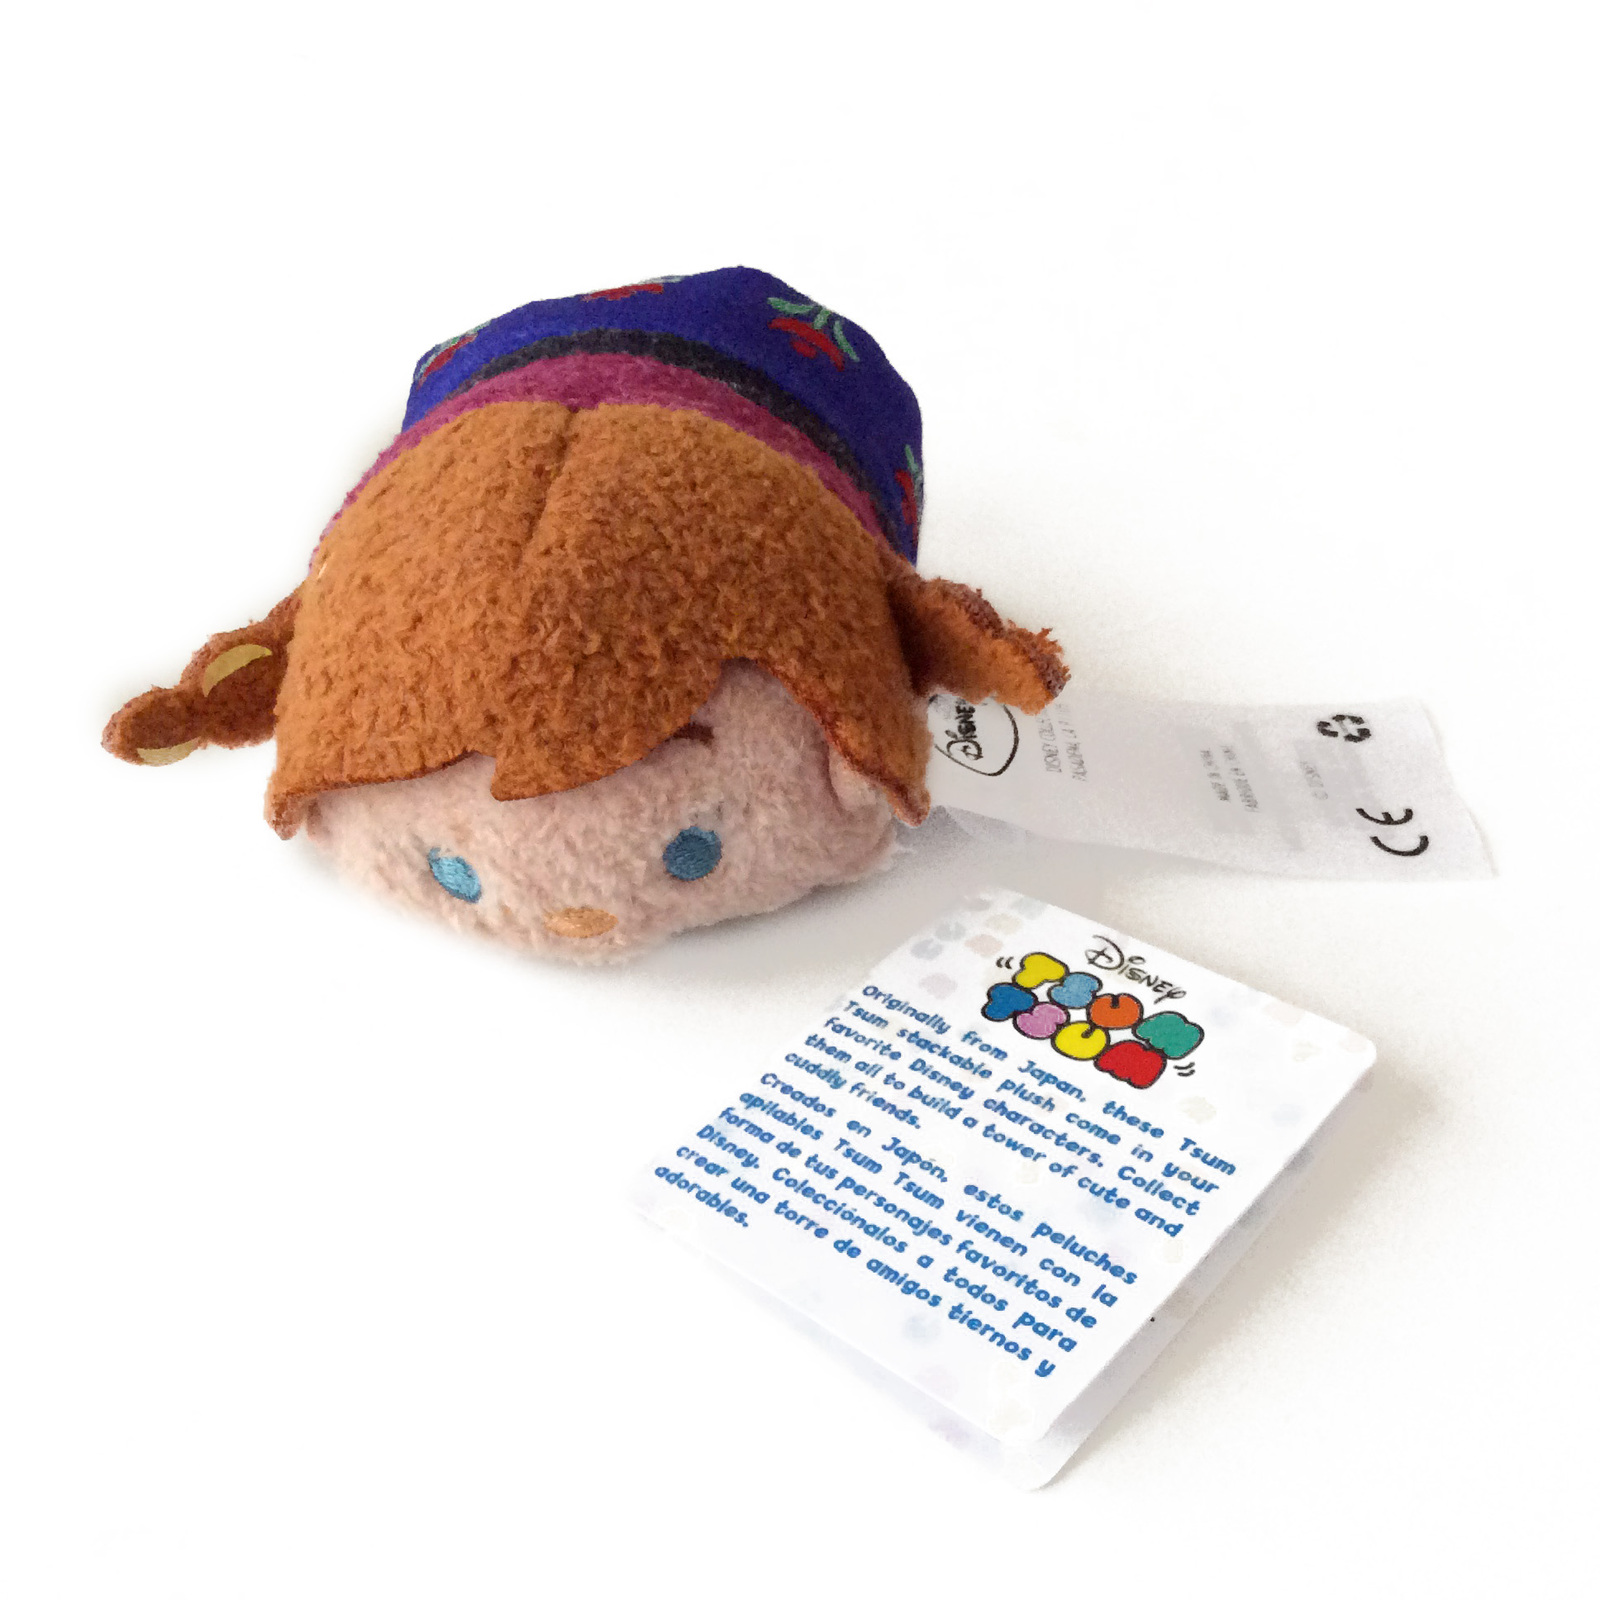 "Disney Tsum Tsum Mini 3.5"" Plush - Frozen (Anna)"